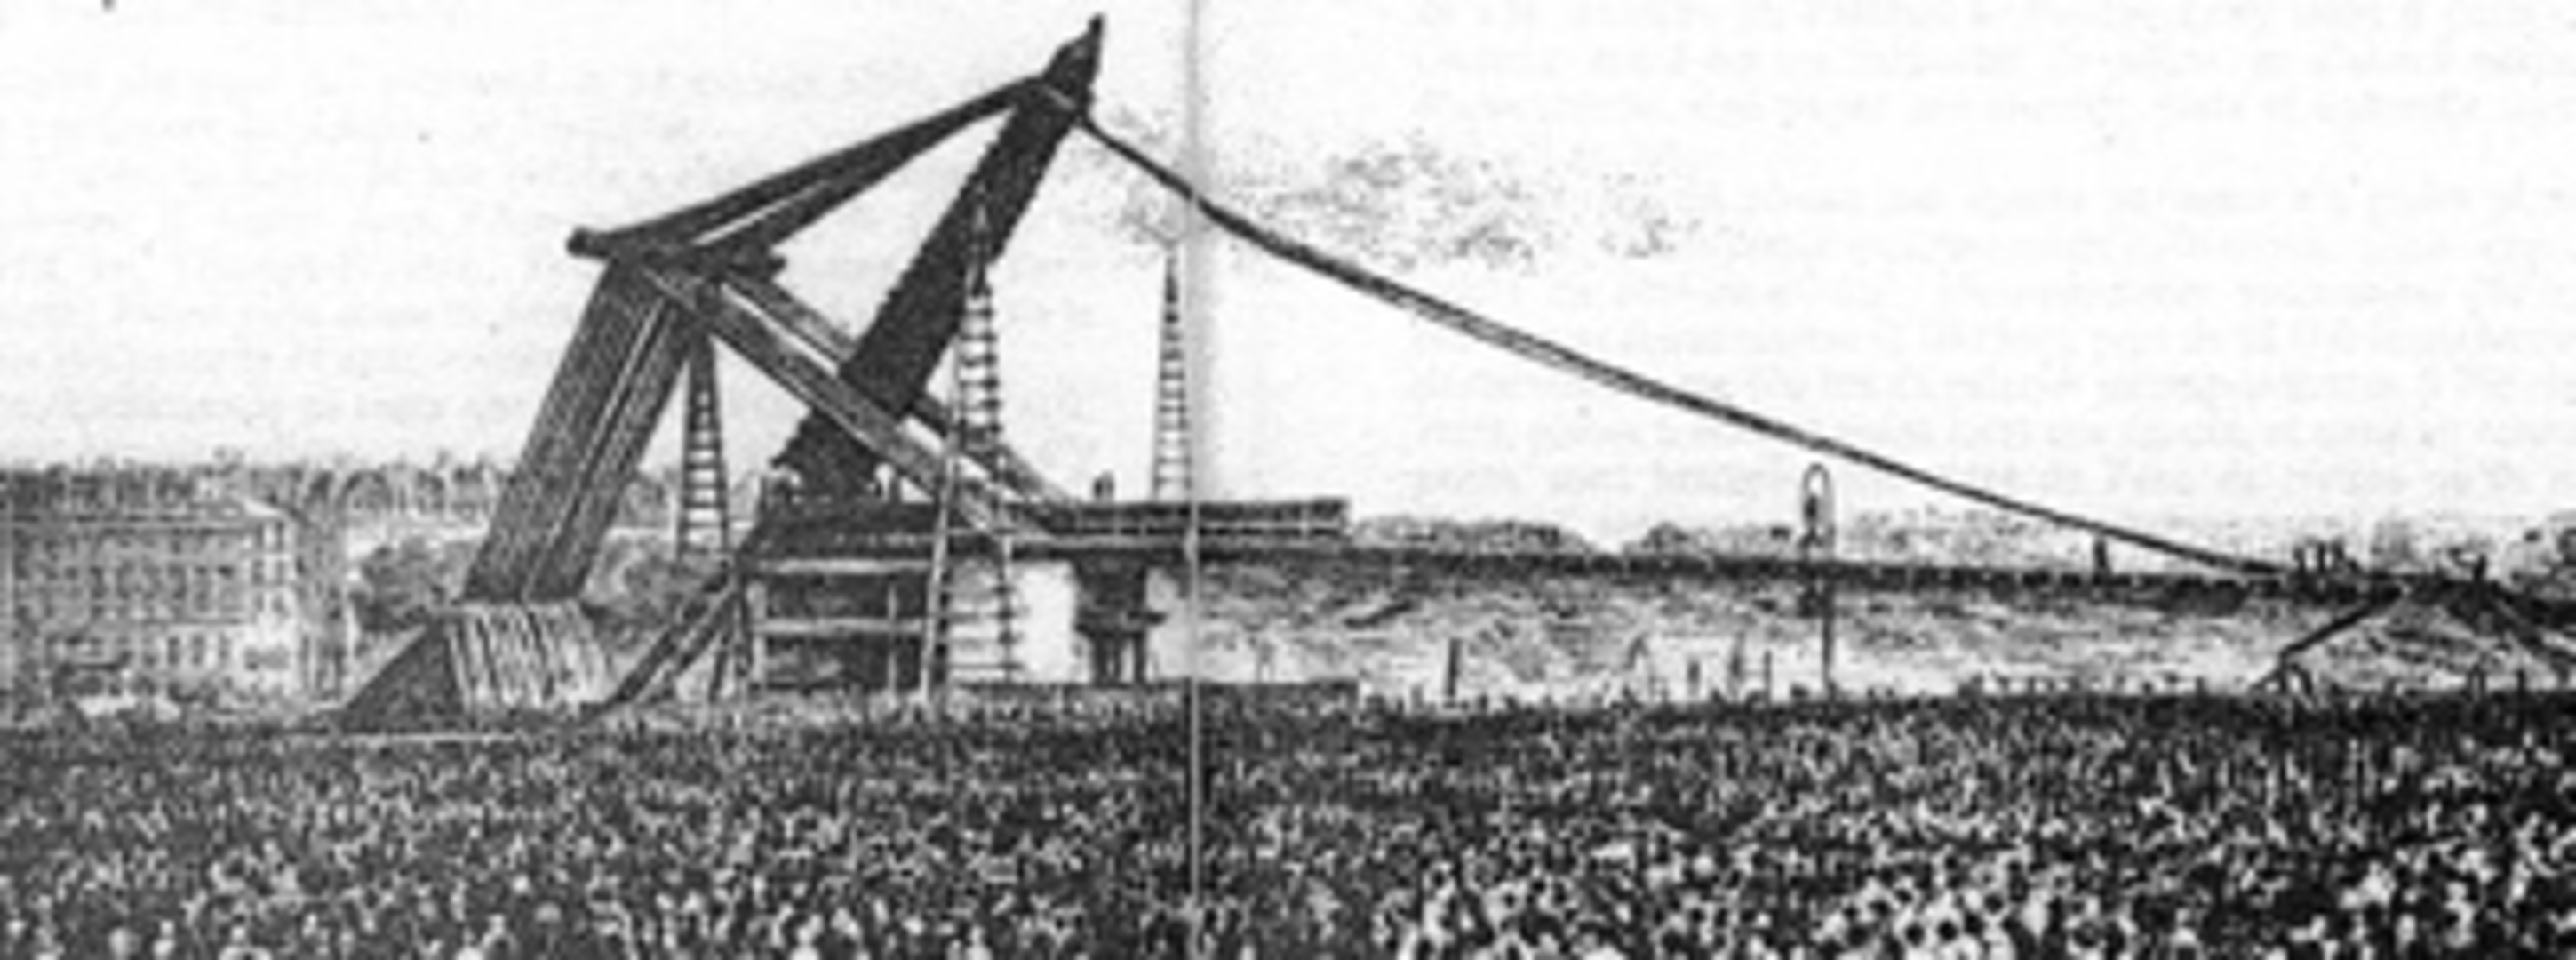 Erection obelisque concorde 1836